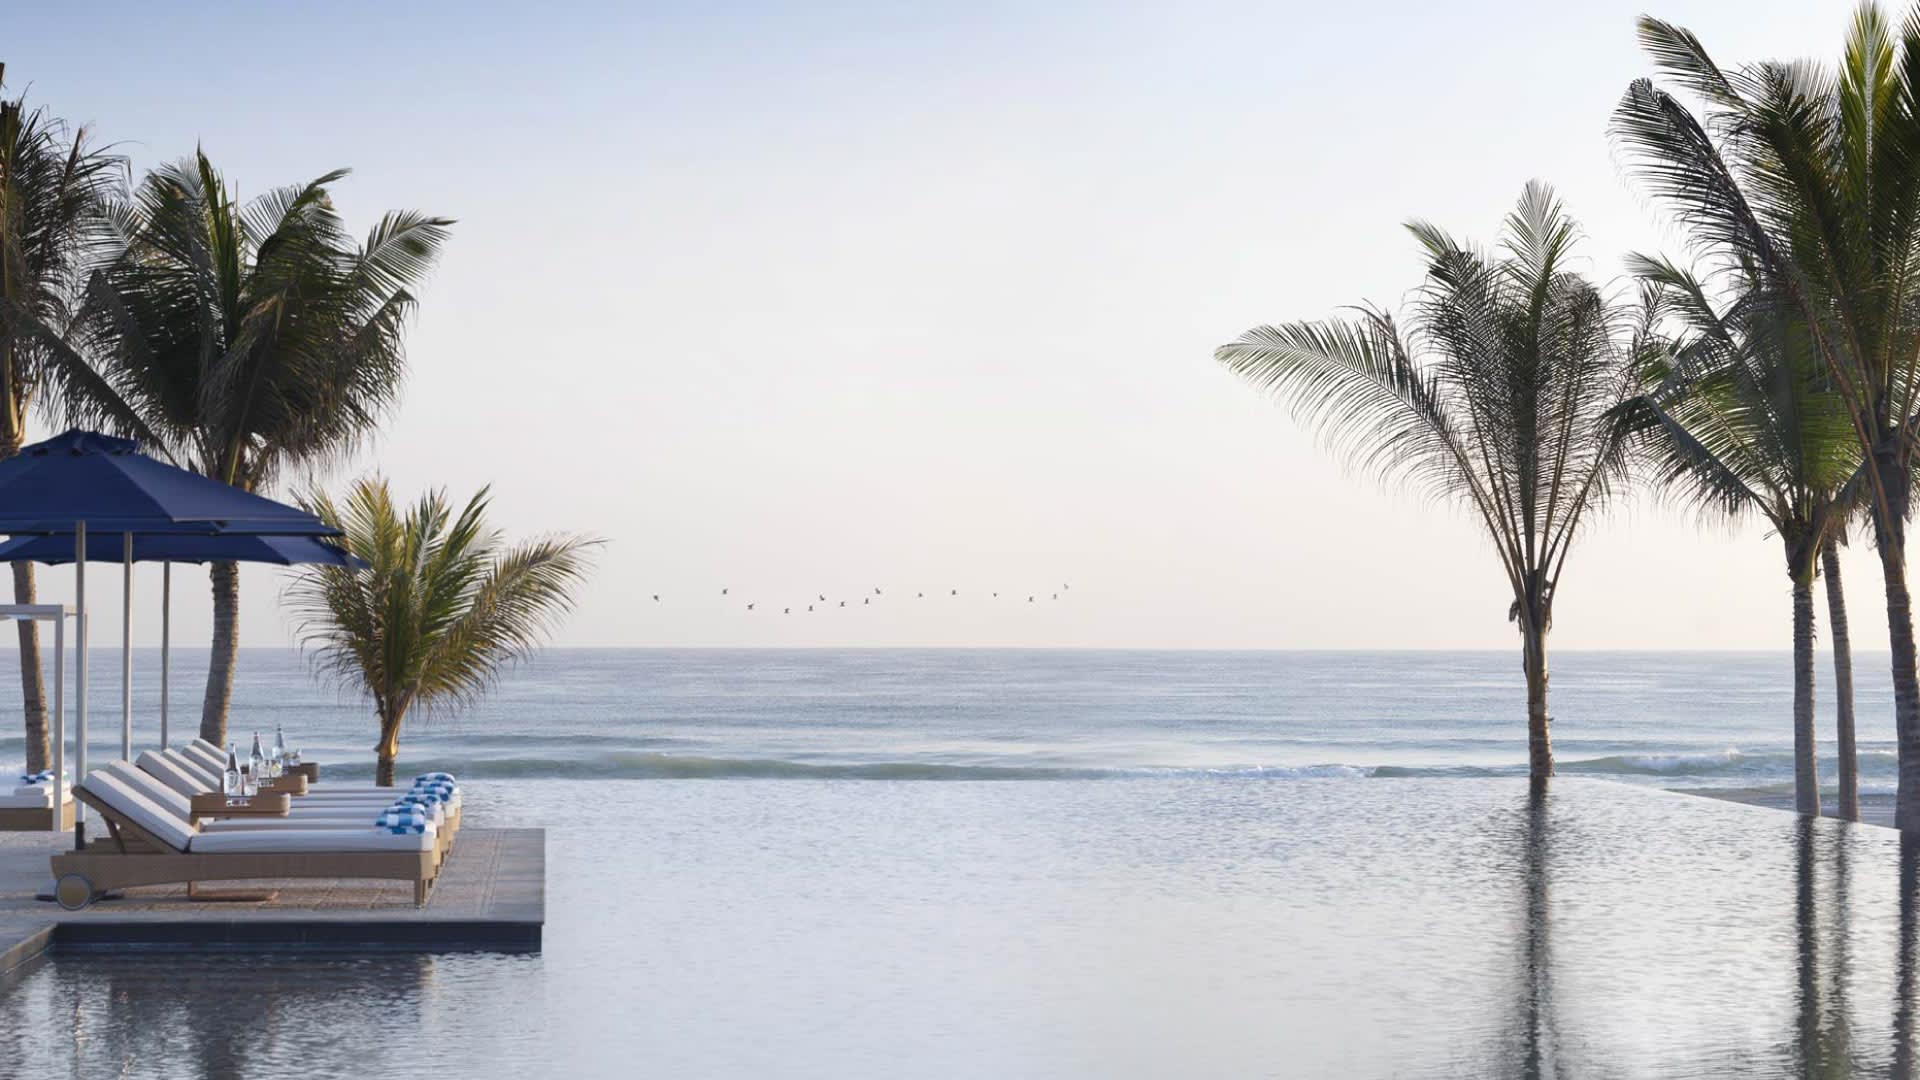 https://assets.anantara.com/image/upload/q_auto/media/minor/anantara/images/al-baleed-resort-salalah-by-anantara/the-resort/al_baleed_by_anantara_pool_header_1920x1080.jpg